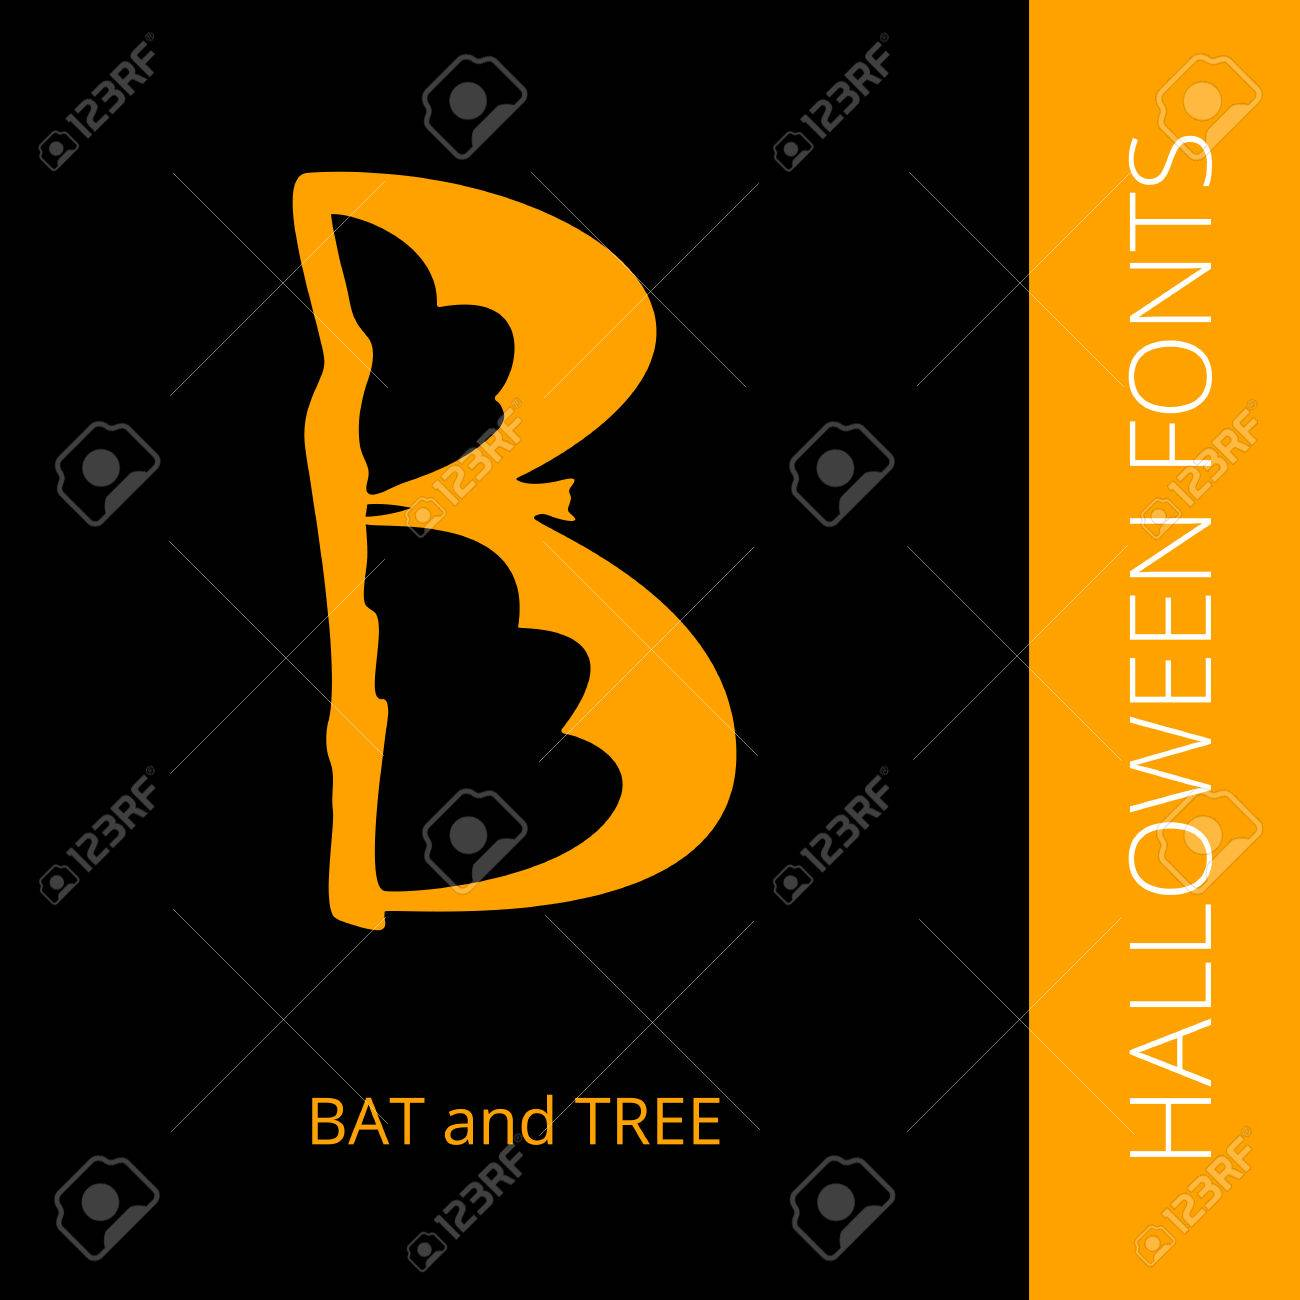 Halloween Design Vector Font Letter B Consist Of Bat And Tree